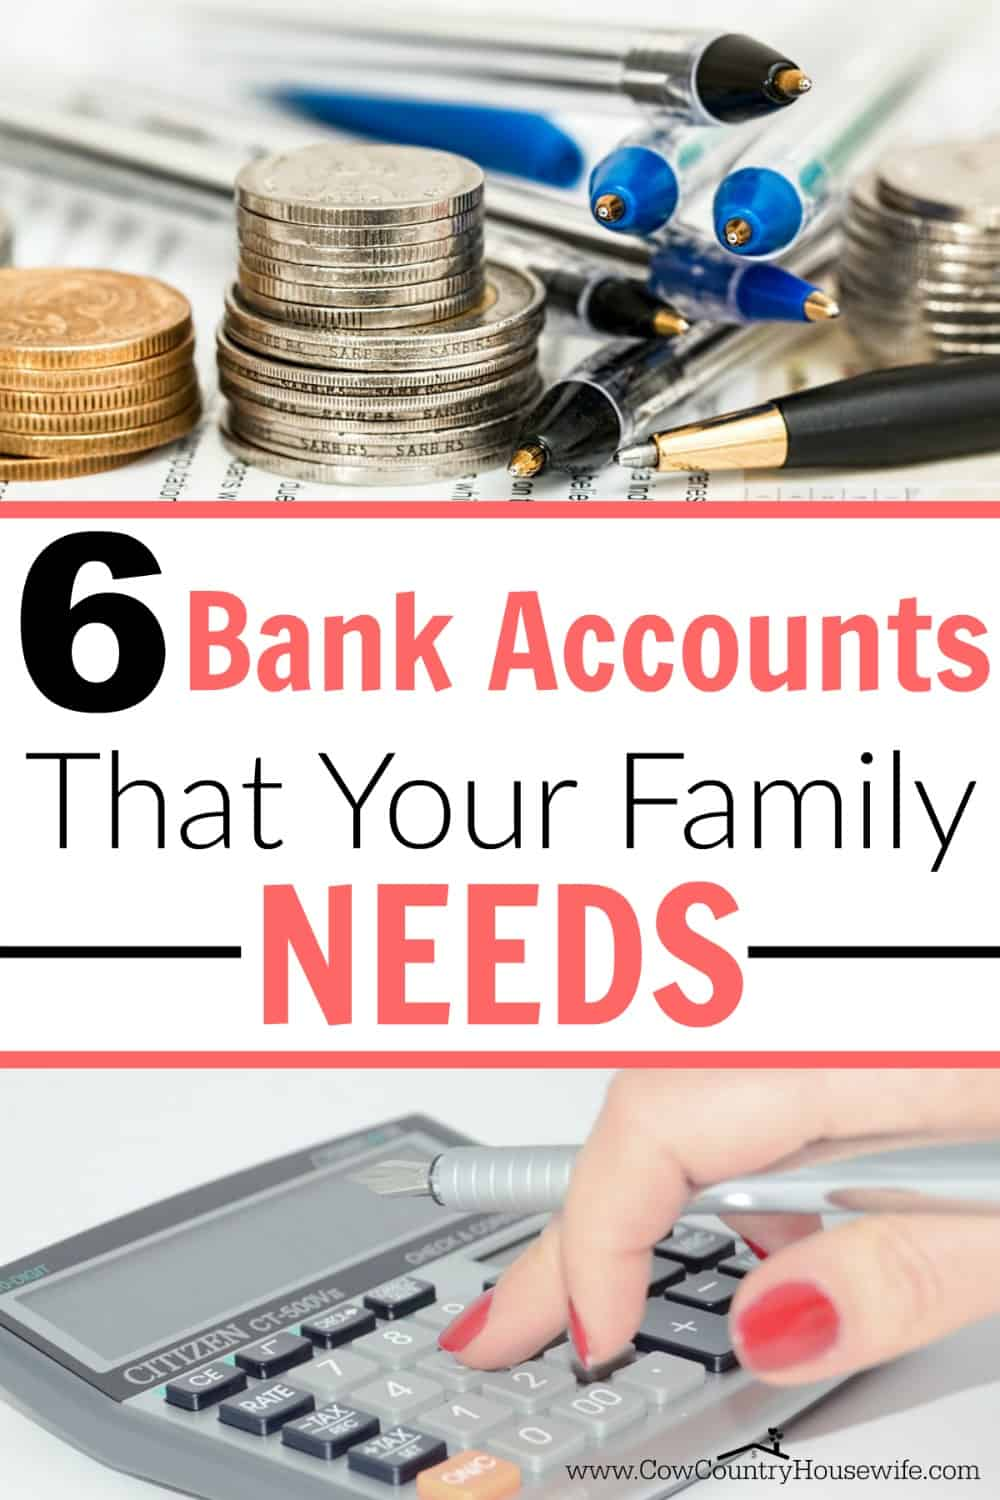 The 6 Bank Accounts that Your Family NEEDS - Caroline Vencil